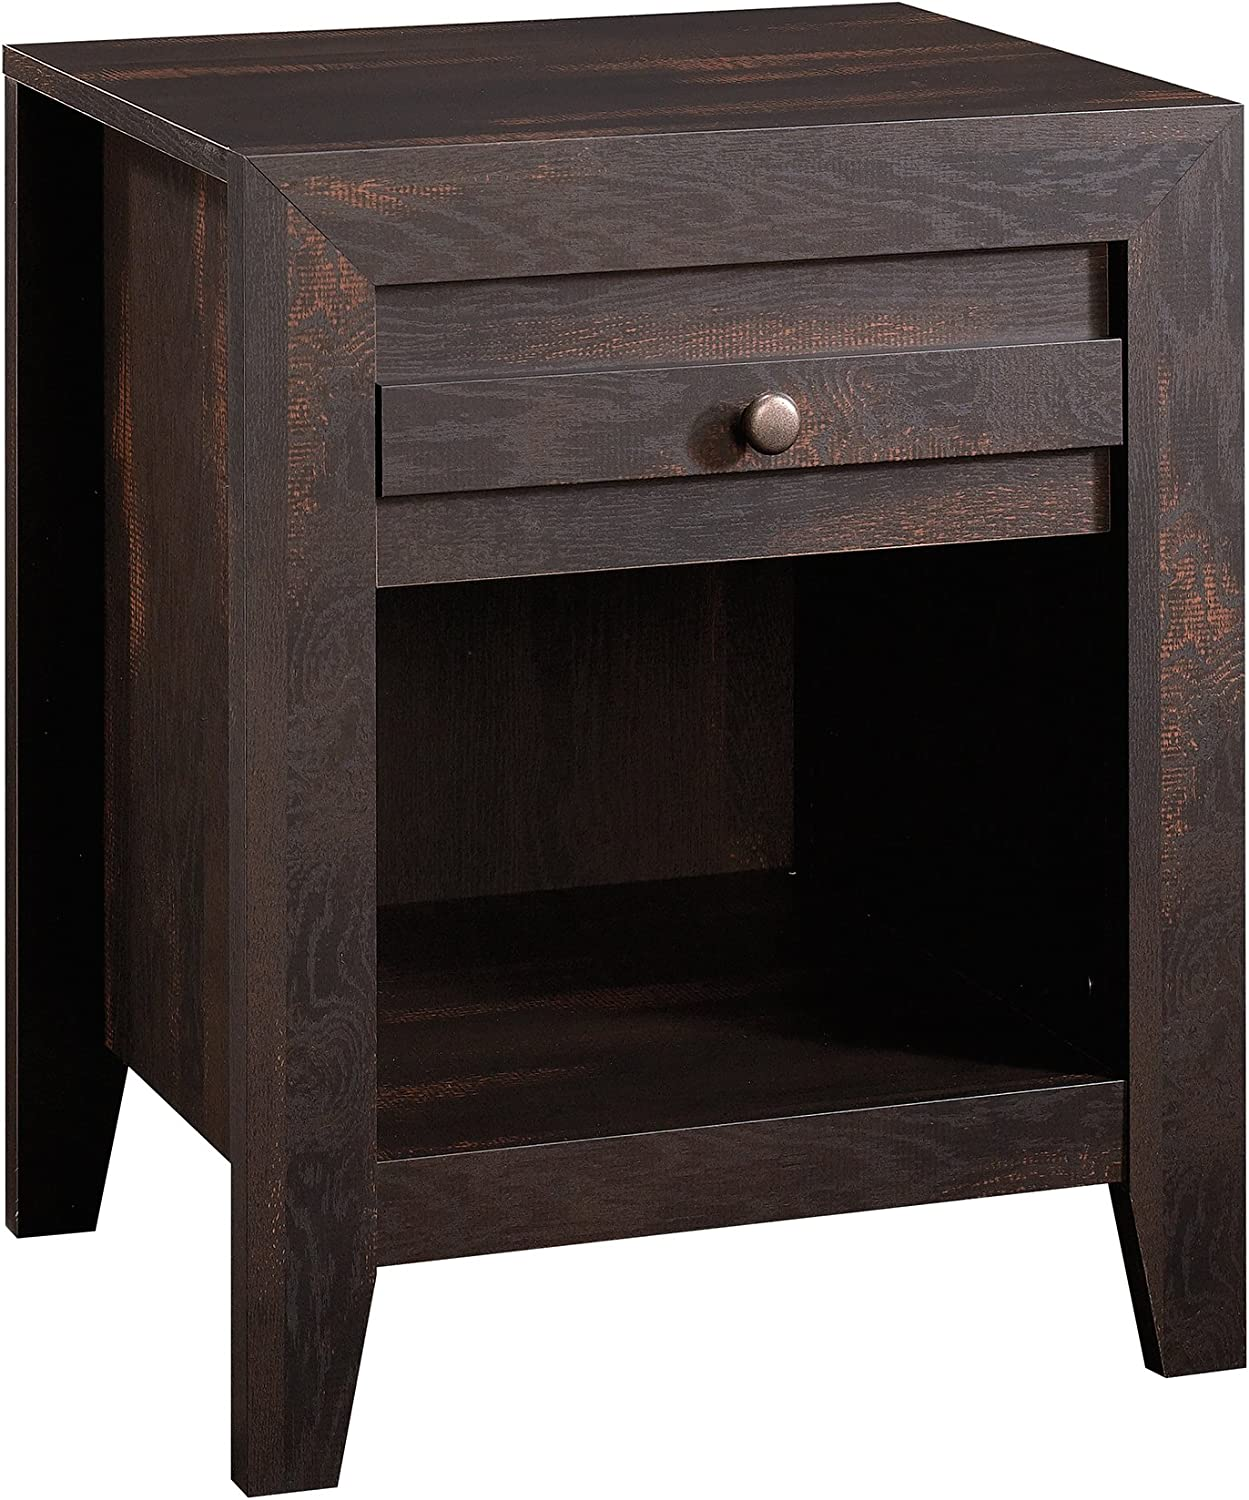 Sauder 418587 Furniture, Night Stand, Charcoal Pine